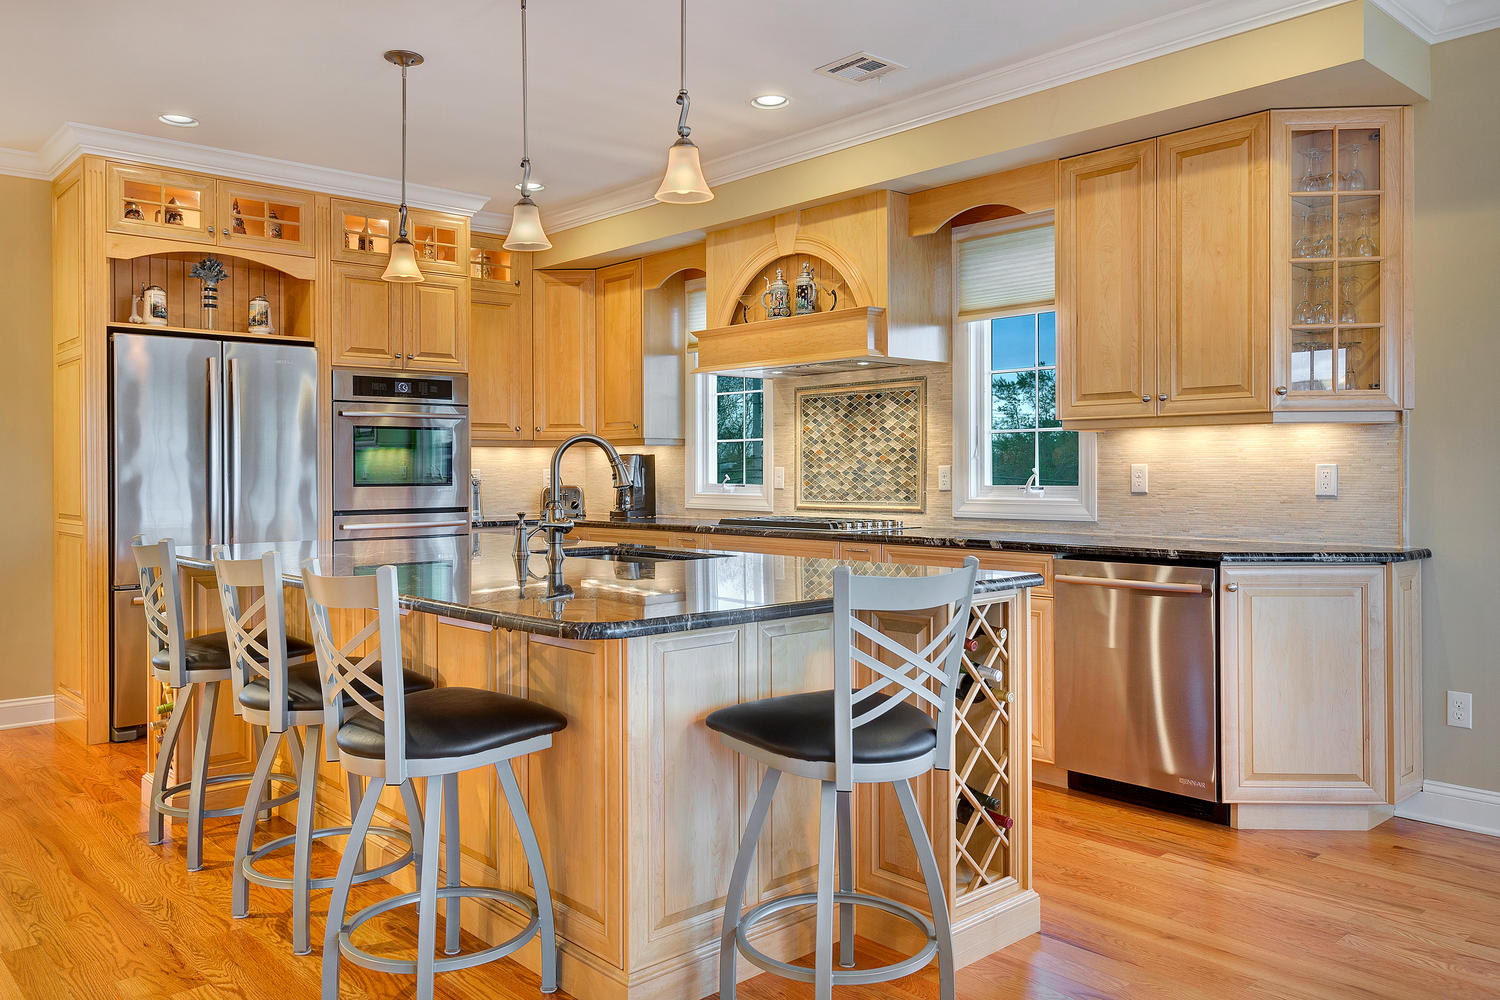 Attractive Natural Stained Wood Kitchen Toms River, New Jersey